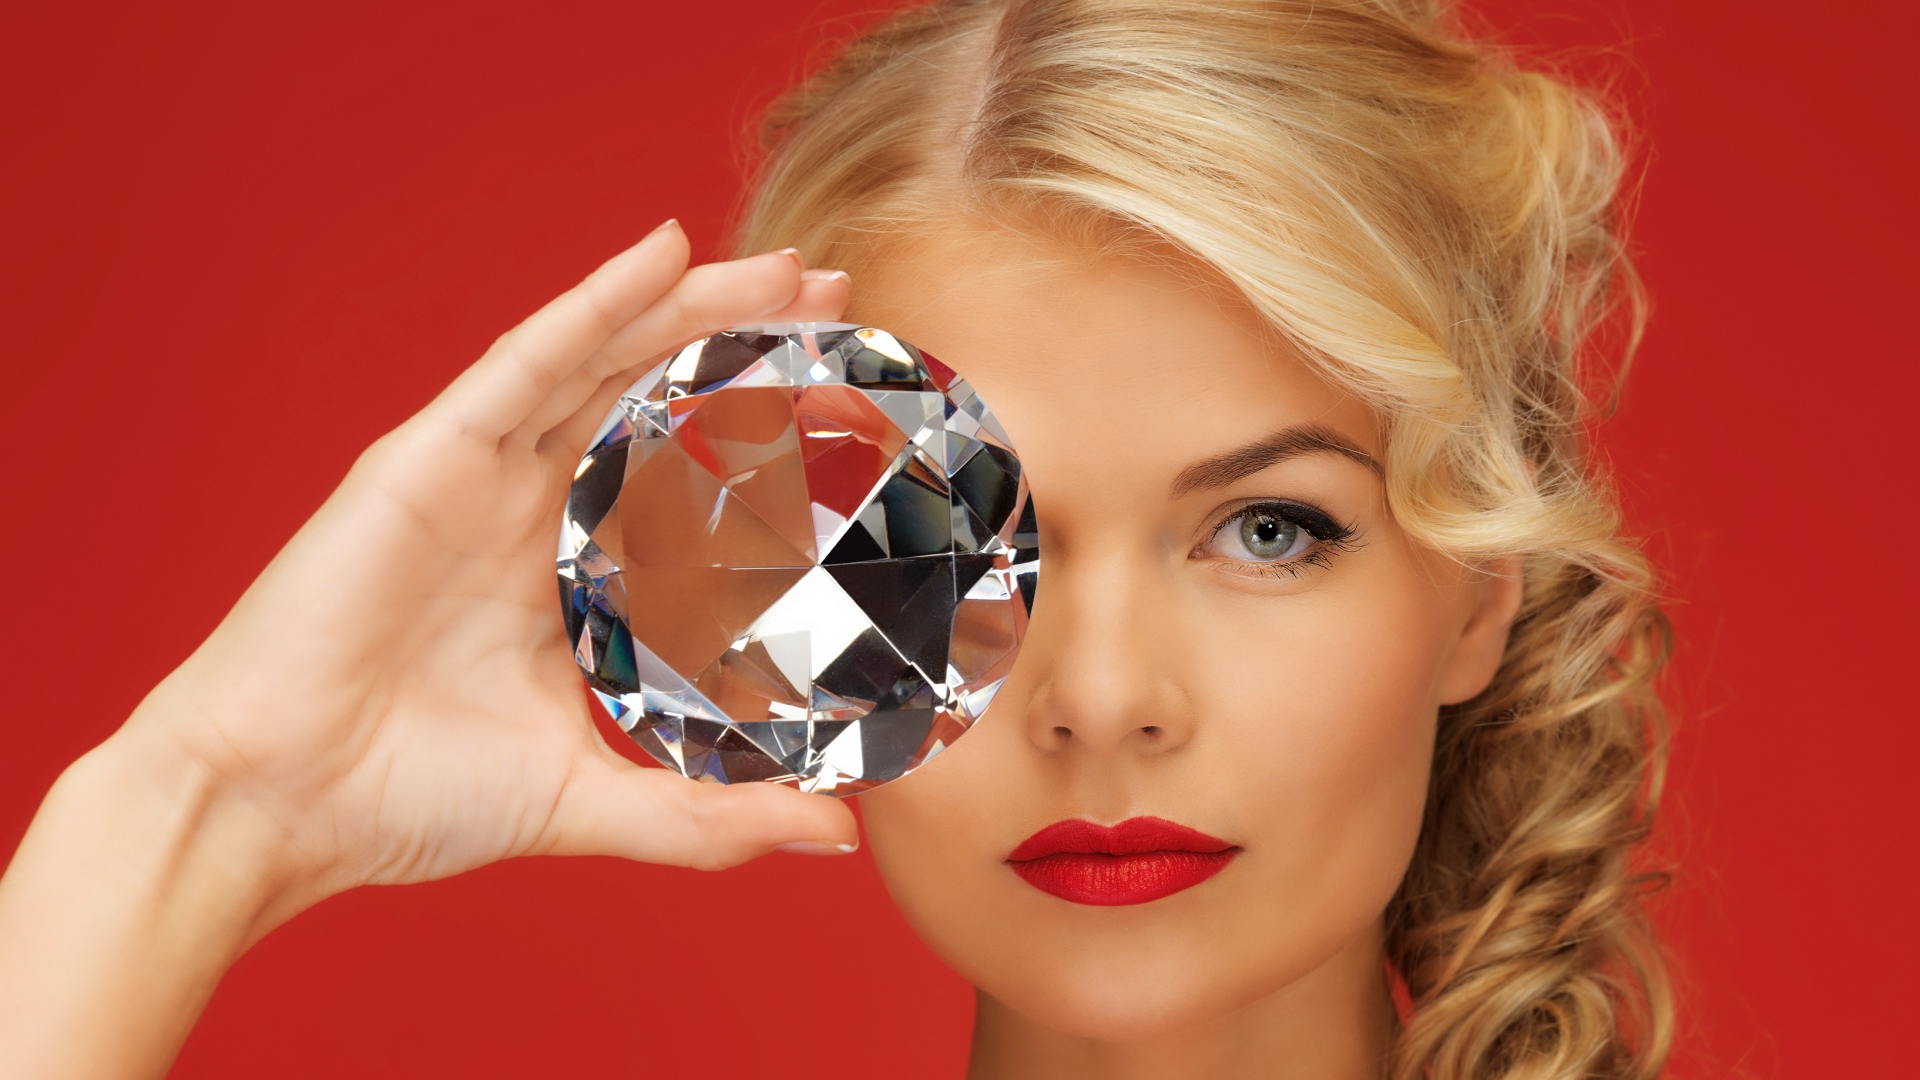 The 10 Largest Diamonds Ever Discovered